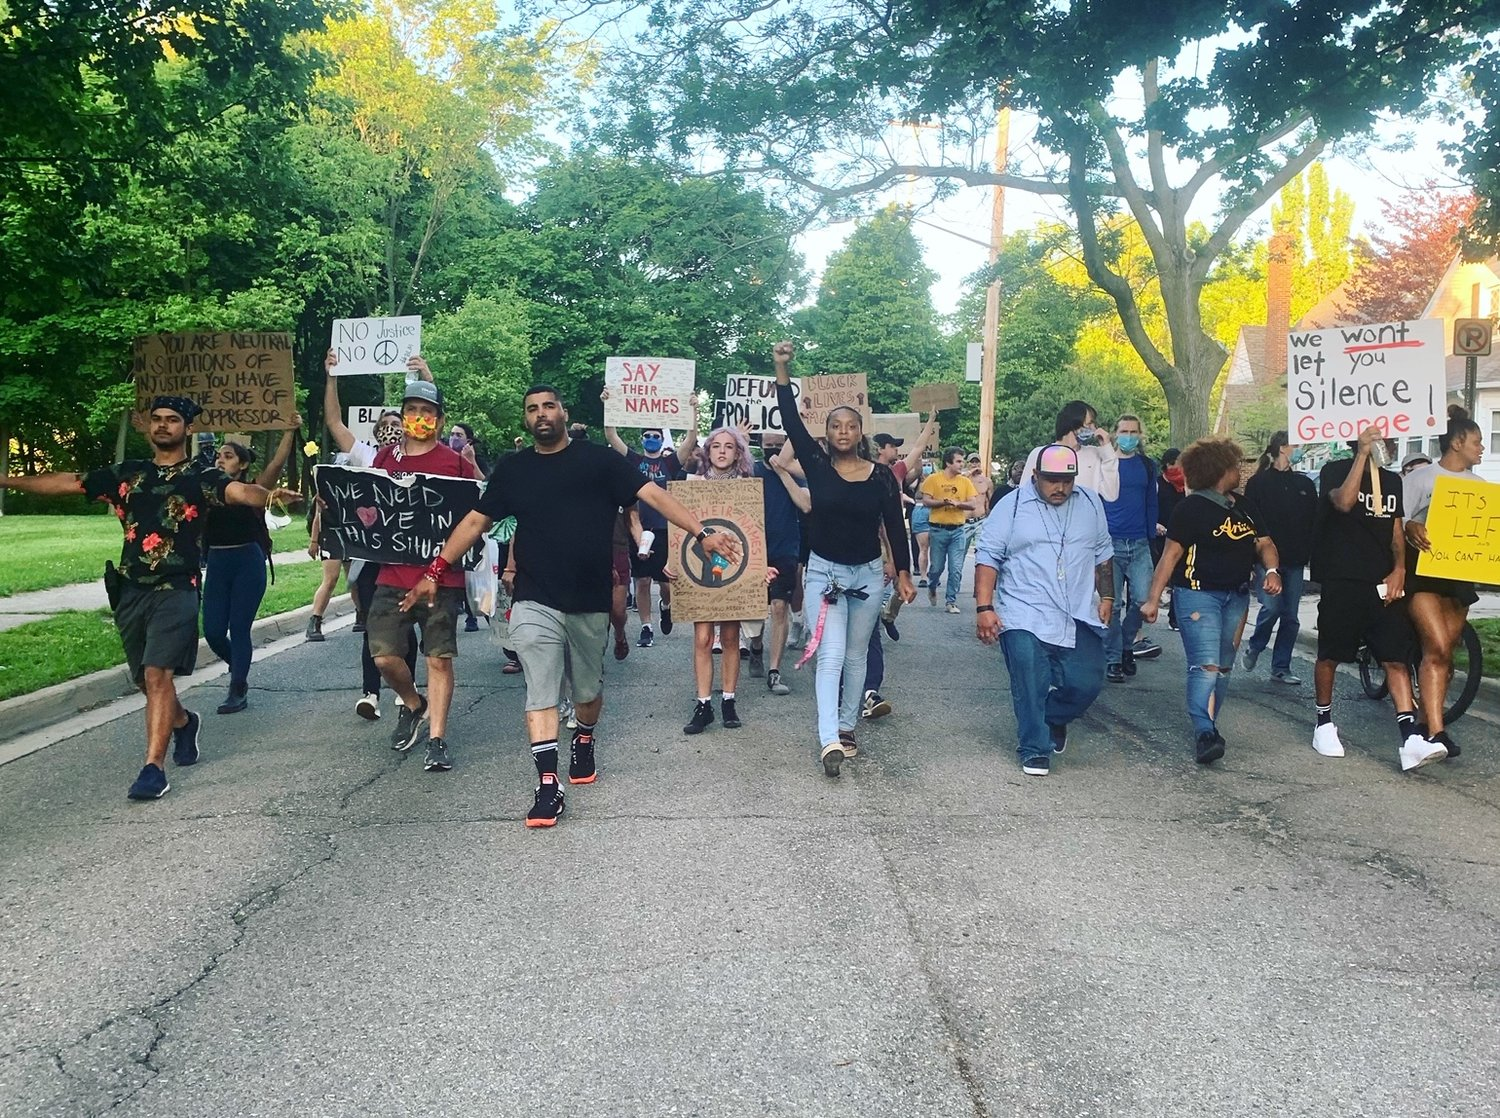 Protesters, led by Paul Birdsong, on Moores River Drive heading to Lansing Mayor Andy Schor's house.